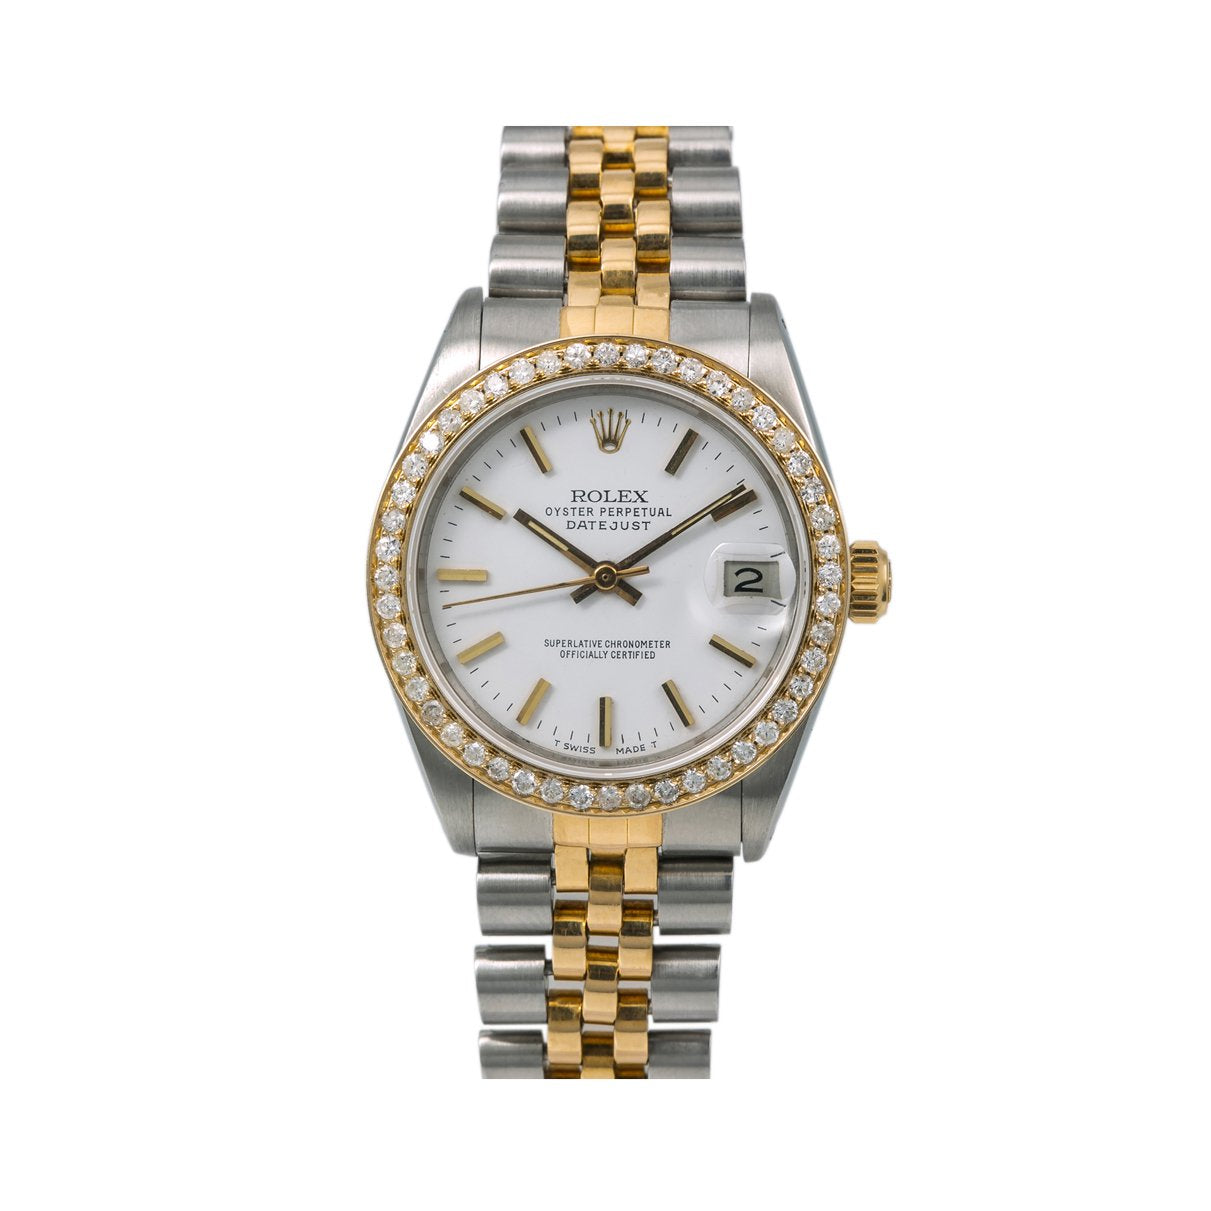 Rolex Datejust Diamond Watch, 68240 31mm, White Dial With 1.05 CT Diamonds